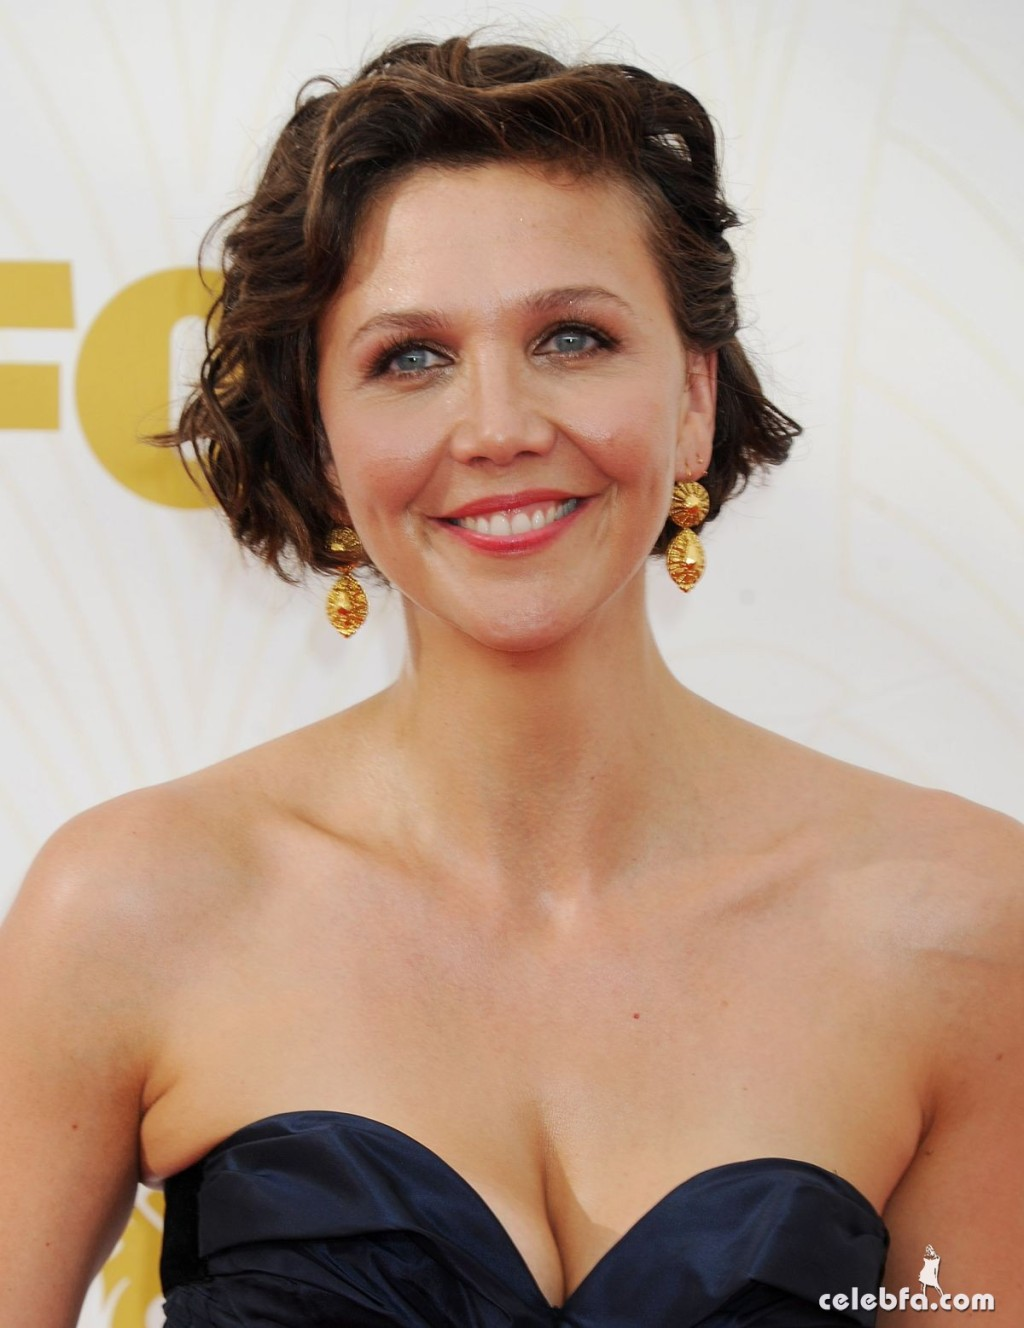 maggie-gyllenhaal-at-2015-emmy-awards (4)